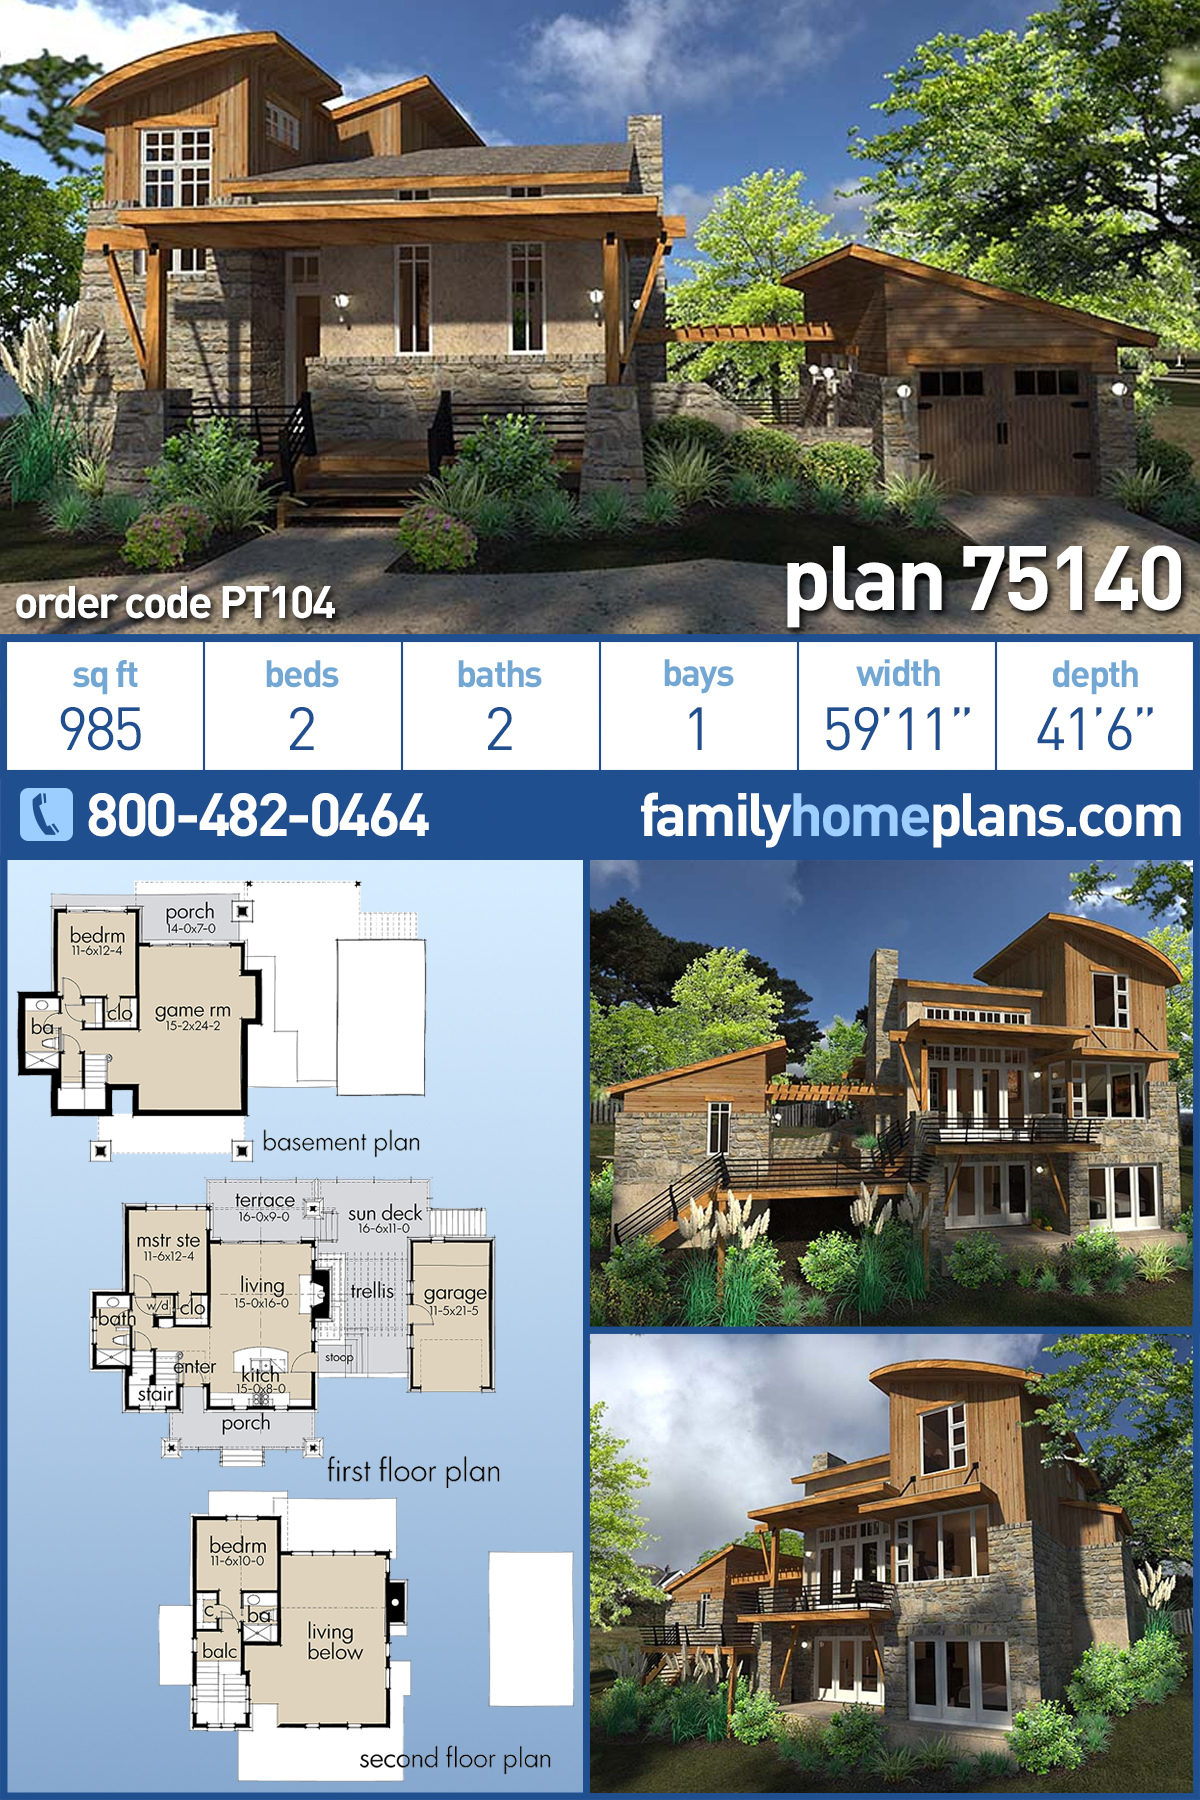 Contemporary, Cottage, Craftsman, Modern, Tuscan House Plan 75140 with 2 Beds, 2 Baths, 1 Car Garage